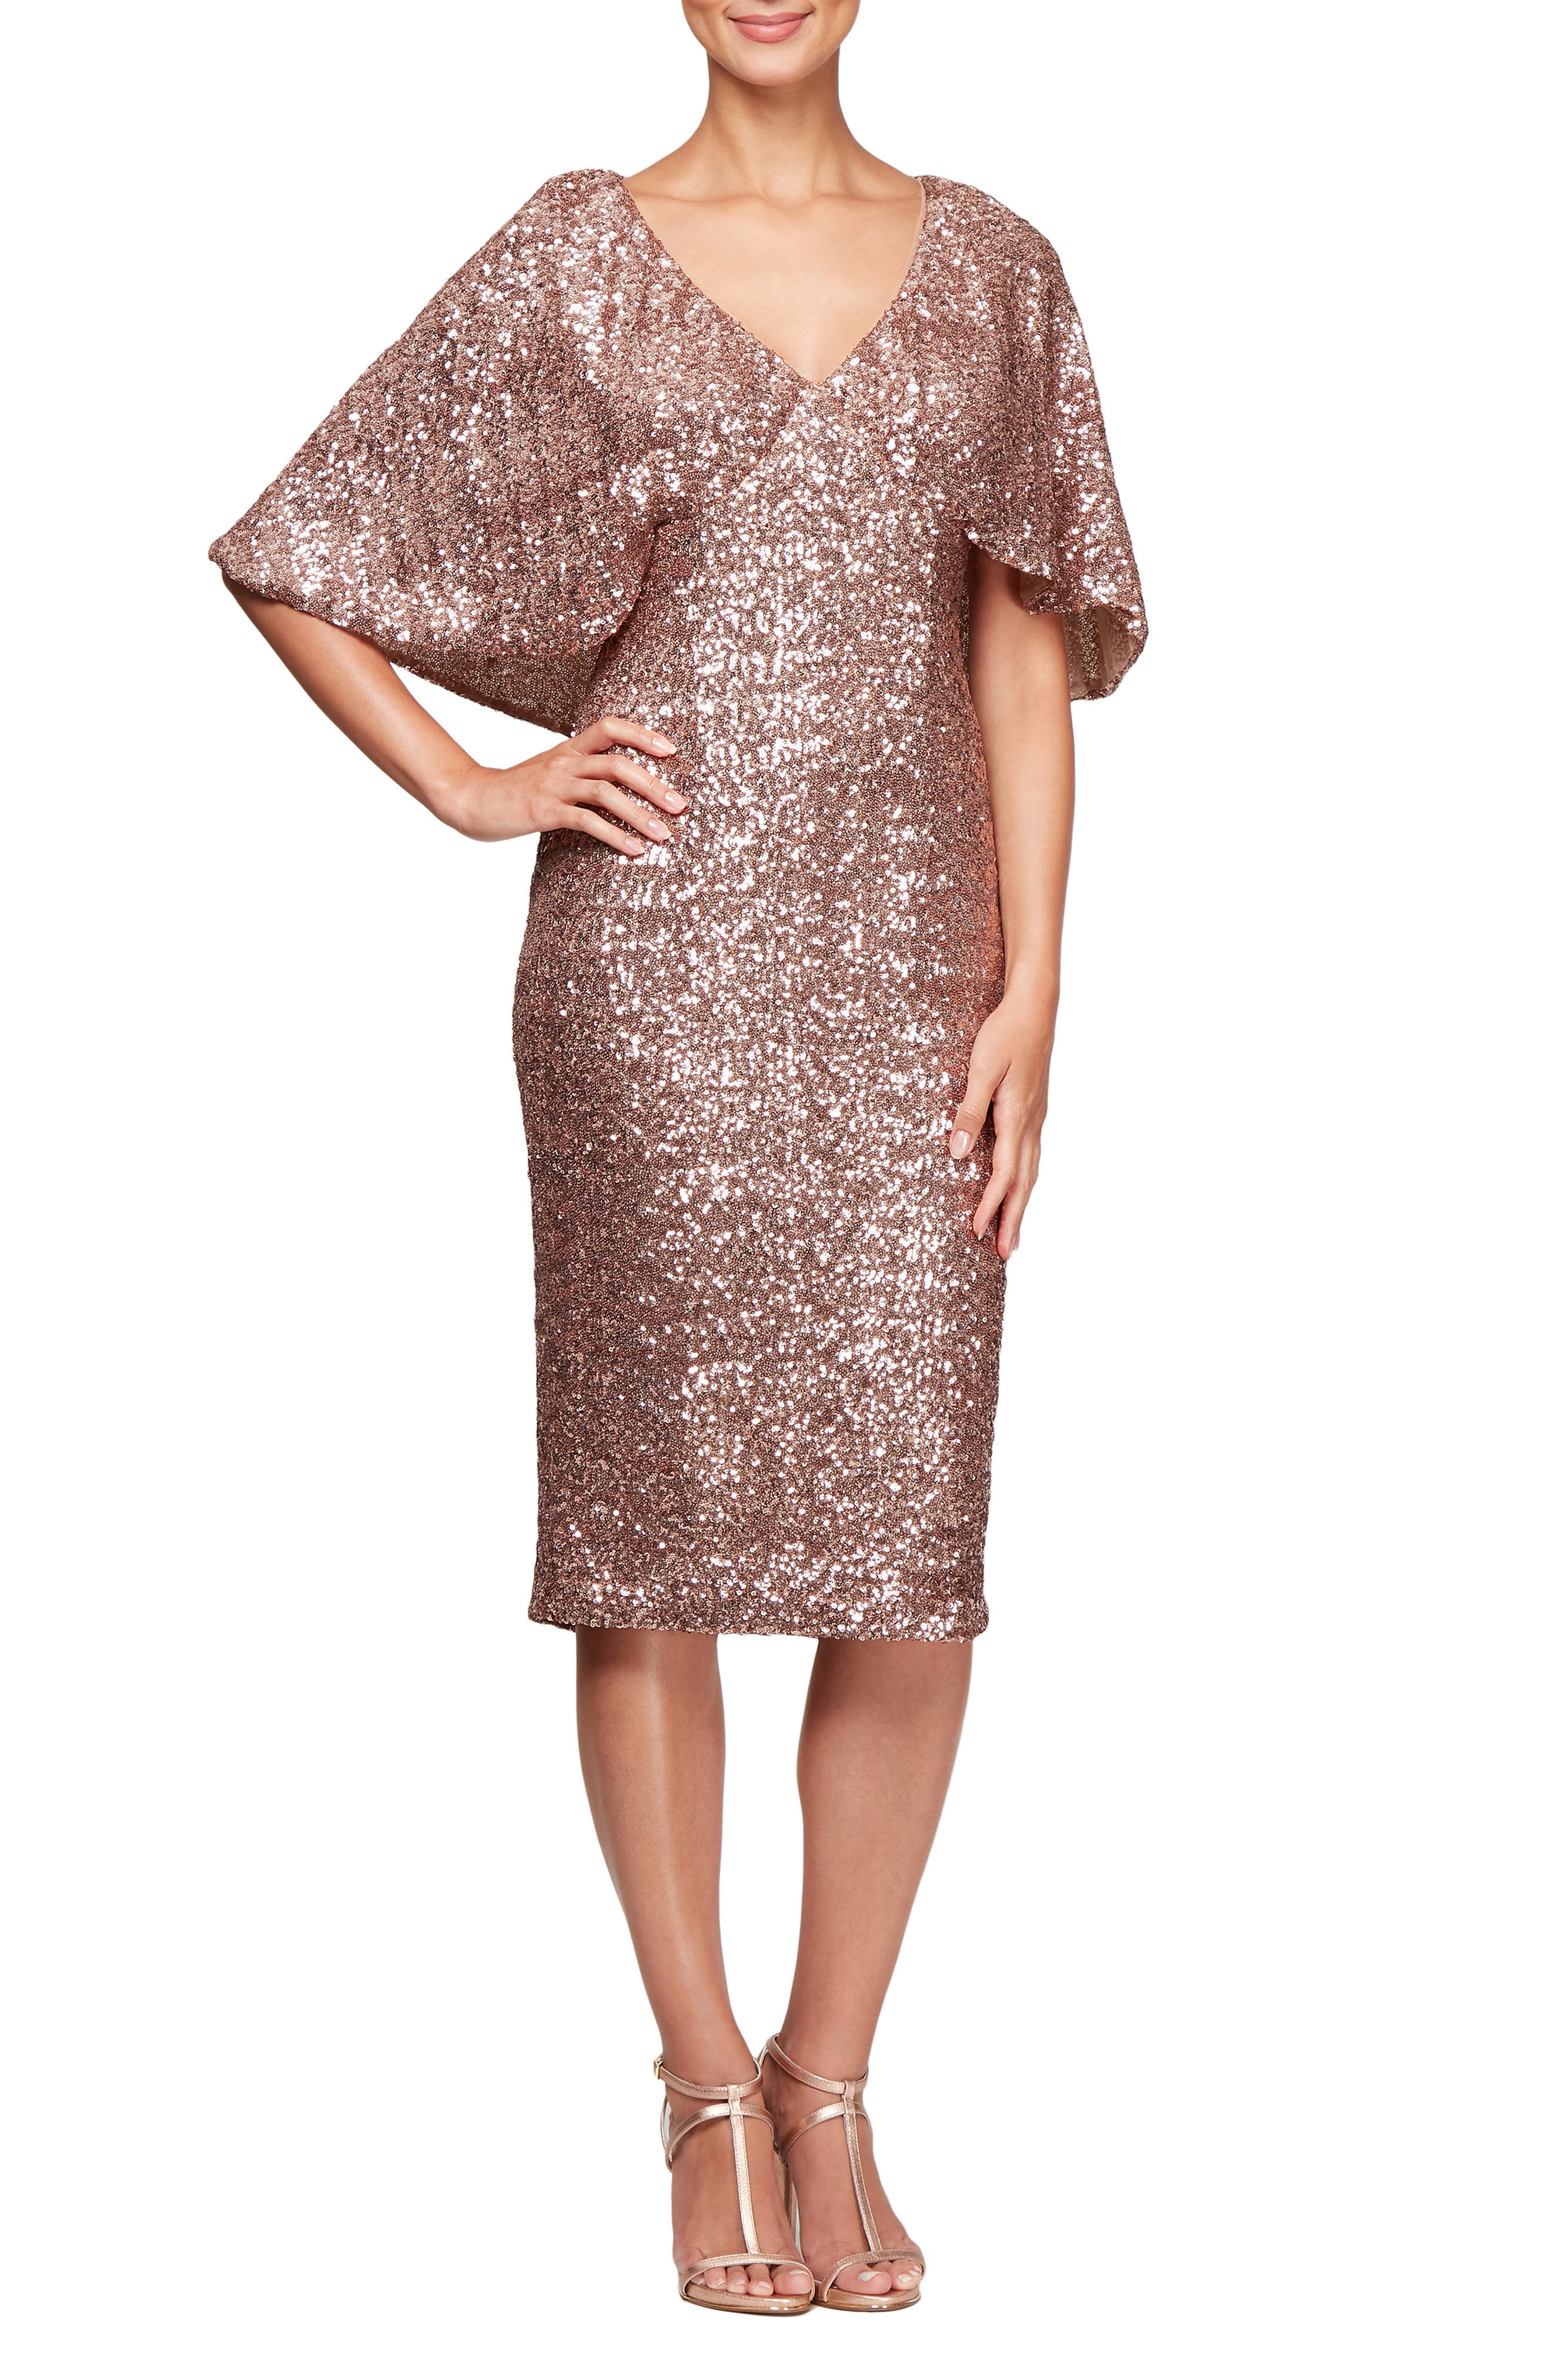 Capelet Sleeve Sequin Cocktail Sheath,                             Main thumbnail 1, color,                             ROSE GOLD